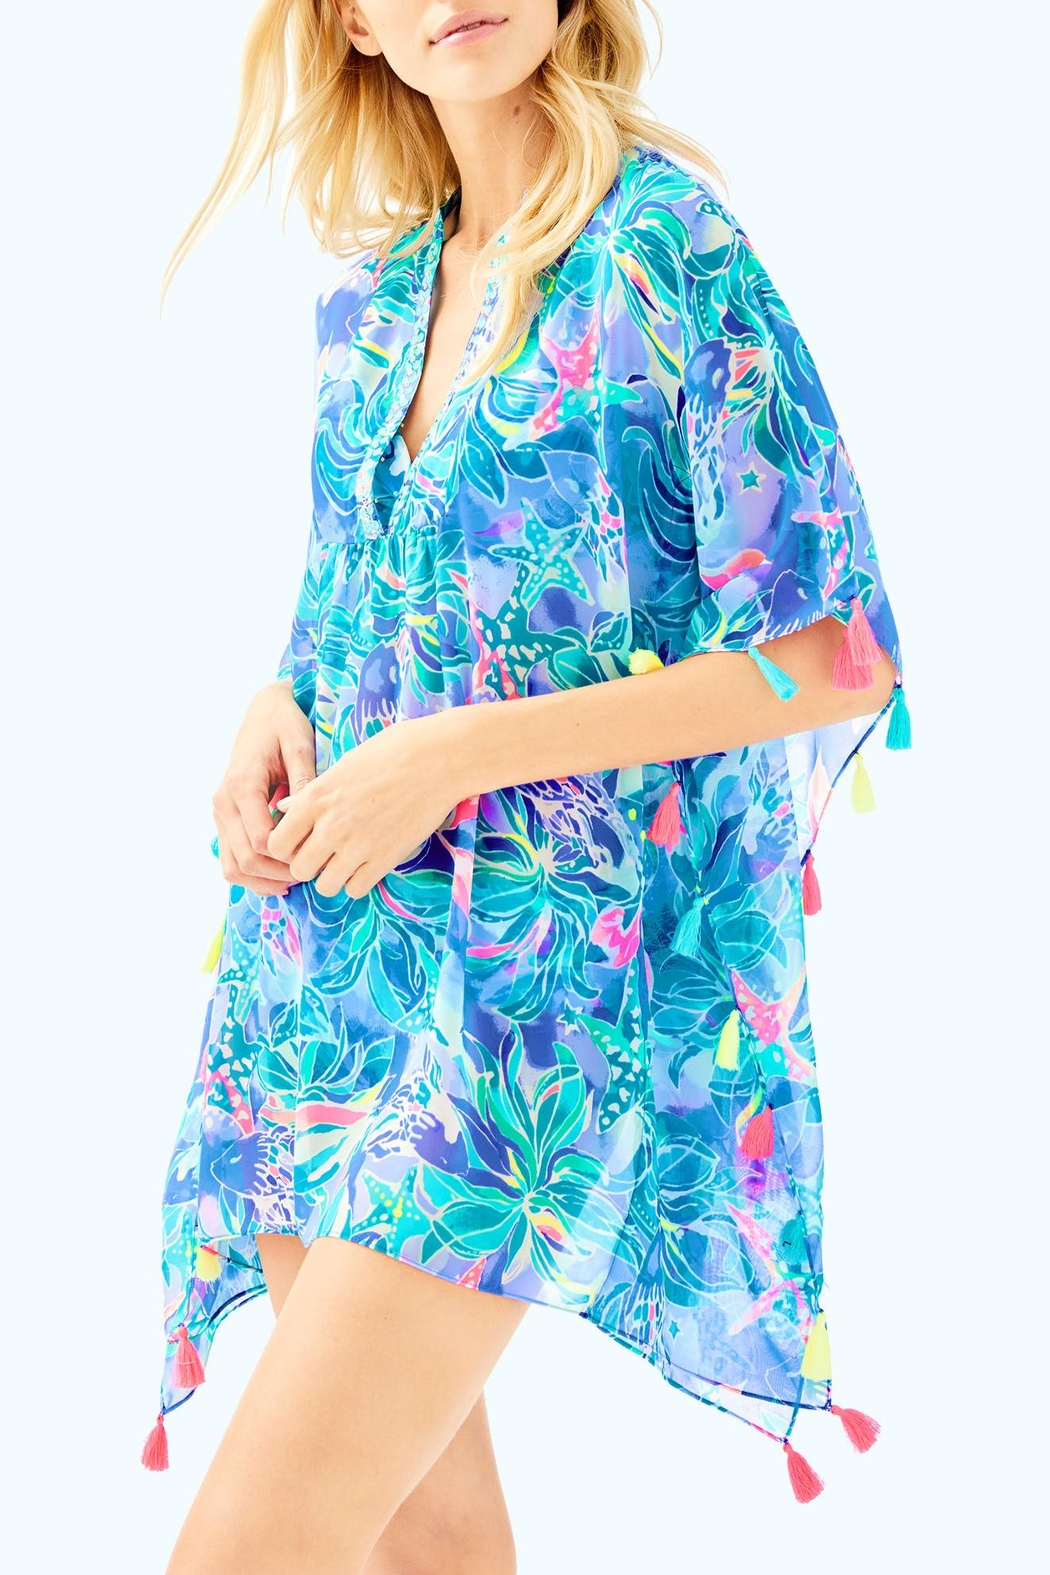 Lilly Pulitzer Arline Cover Up from Sandestin Golf and Beach Resort ...